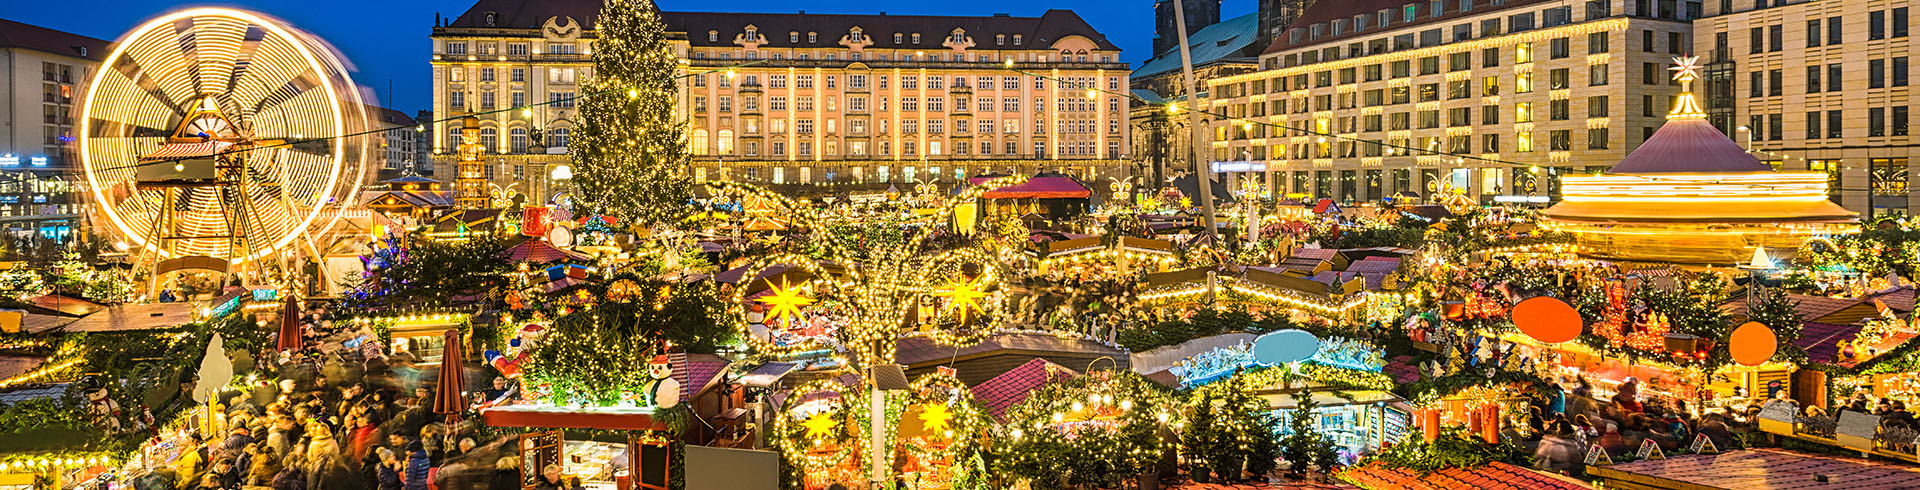 Which Country Hosts Striezelmarkt A Christmas Market Thats Been Held Since 1434.Rci